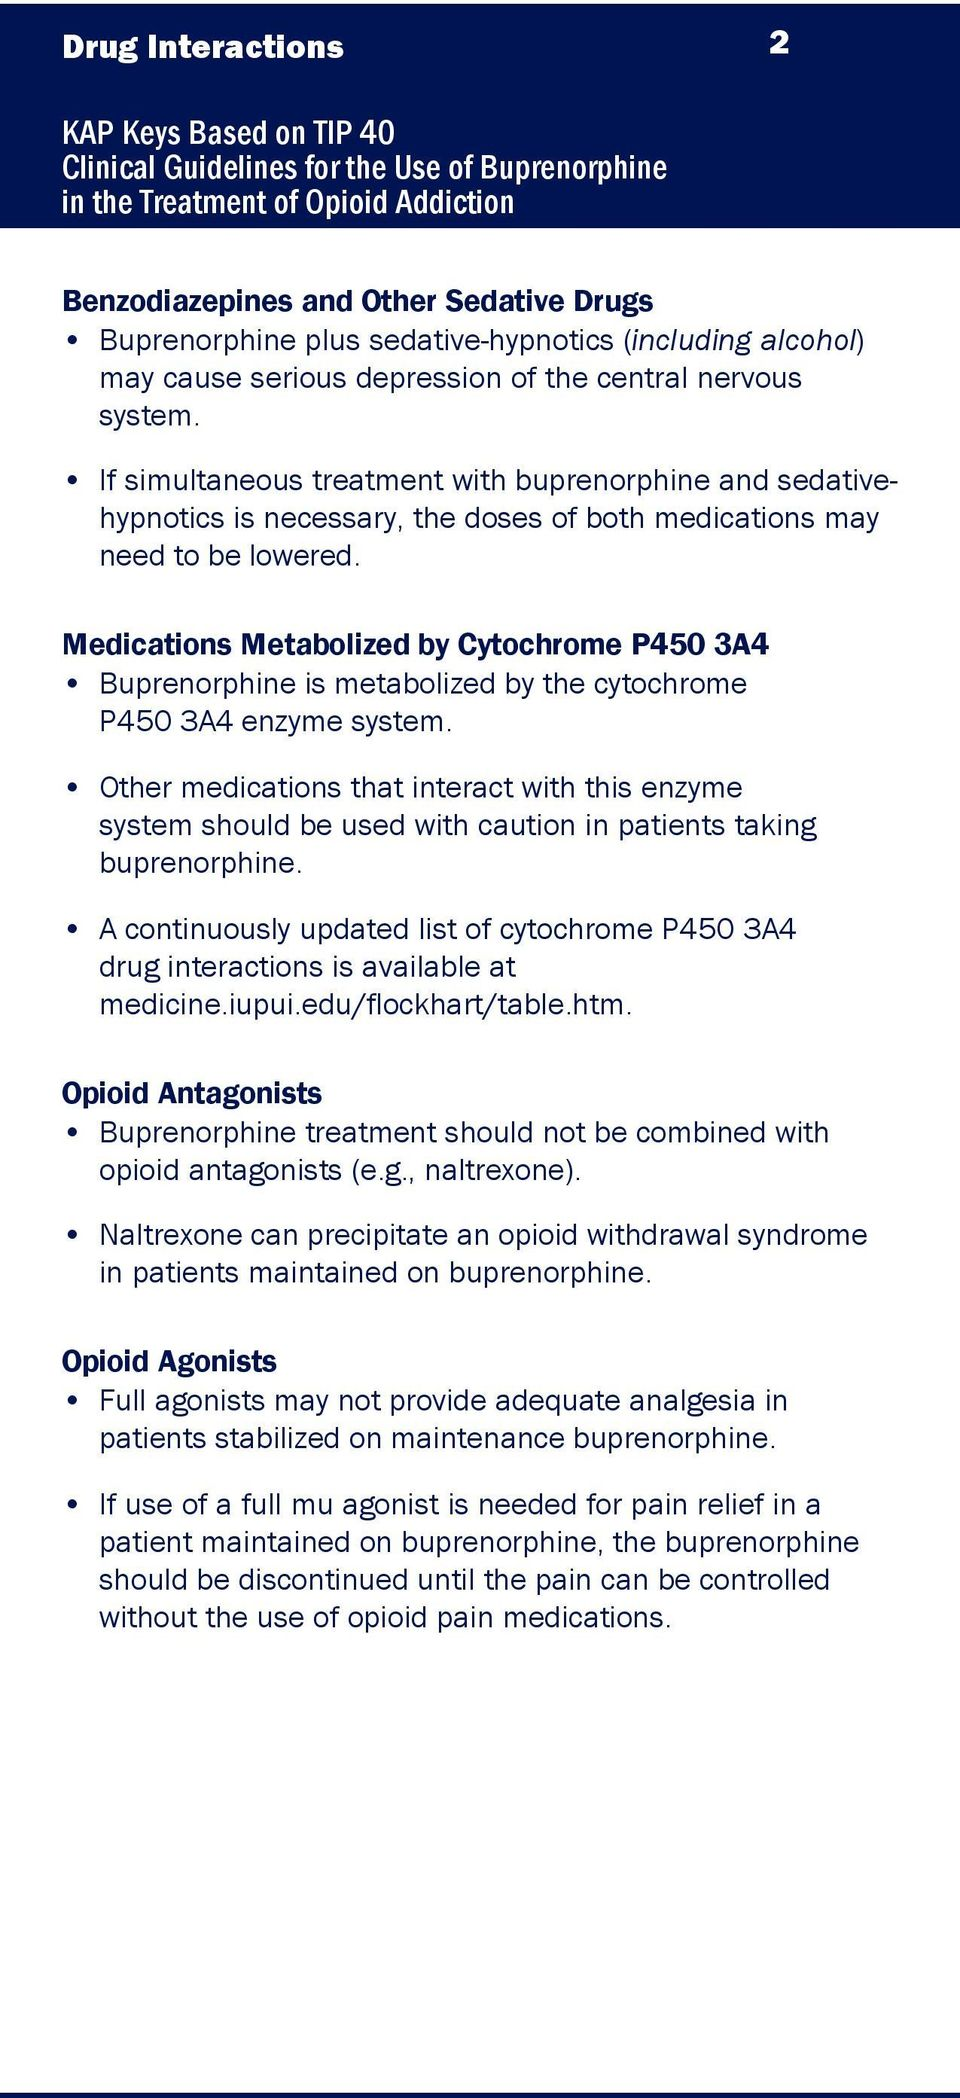 Medications Metabolized by Cytochrome P450 3A4 Buprenorphine is metabolized by the cytochrome P450 3A4 enzyme system.